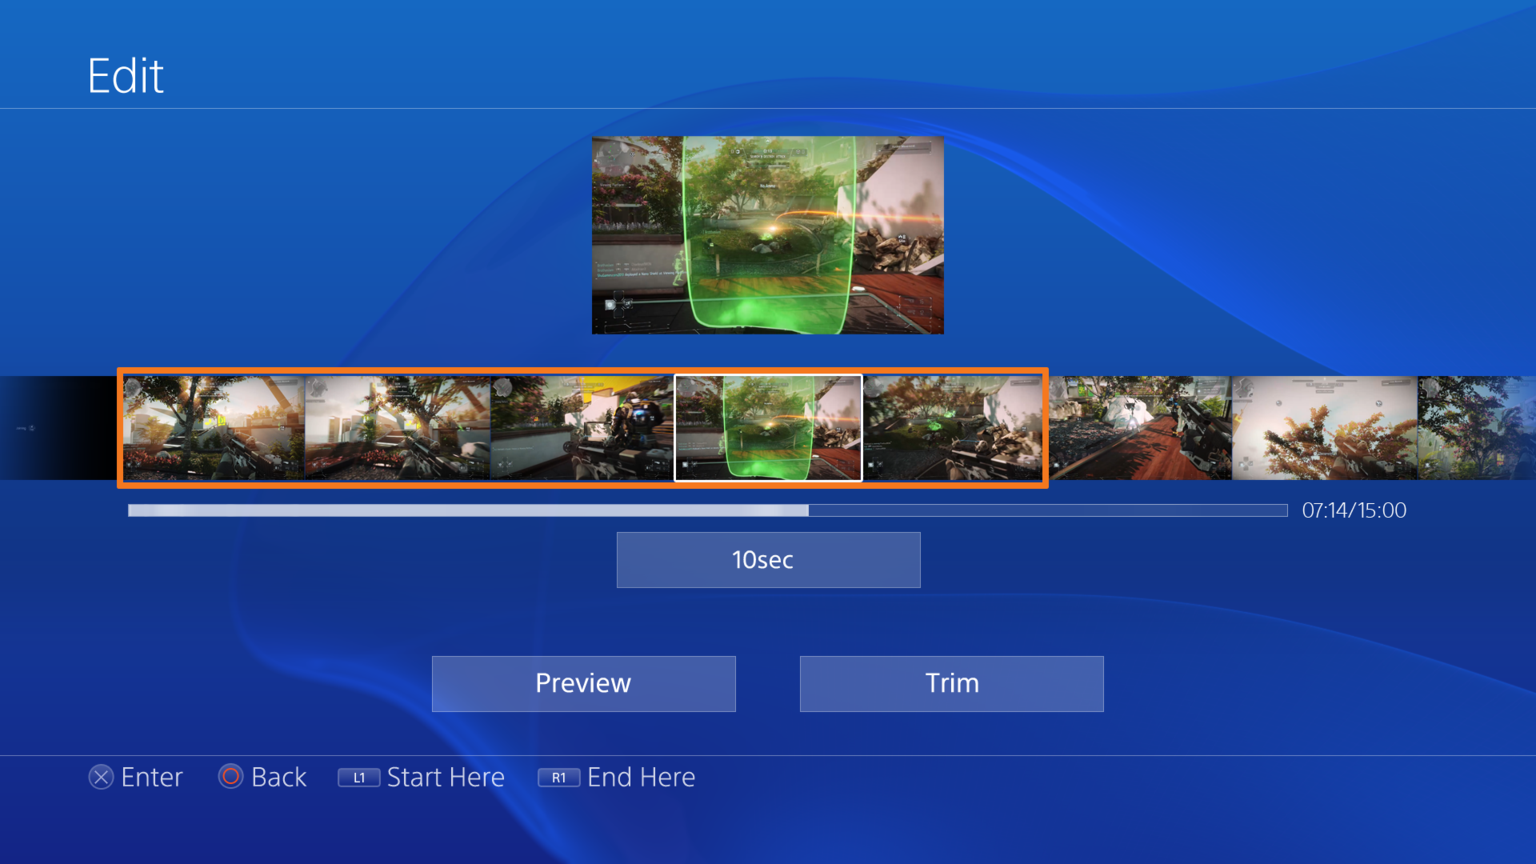 New hd images of the ps4 console and mobile ui for Ps4 at home